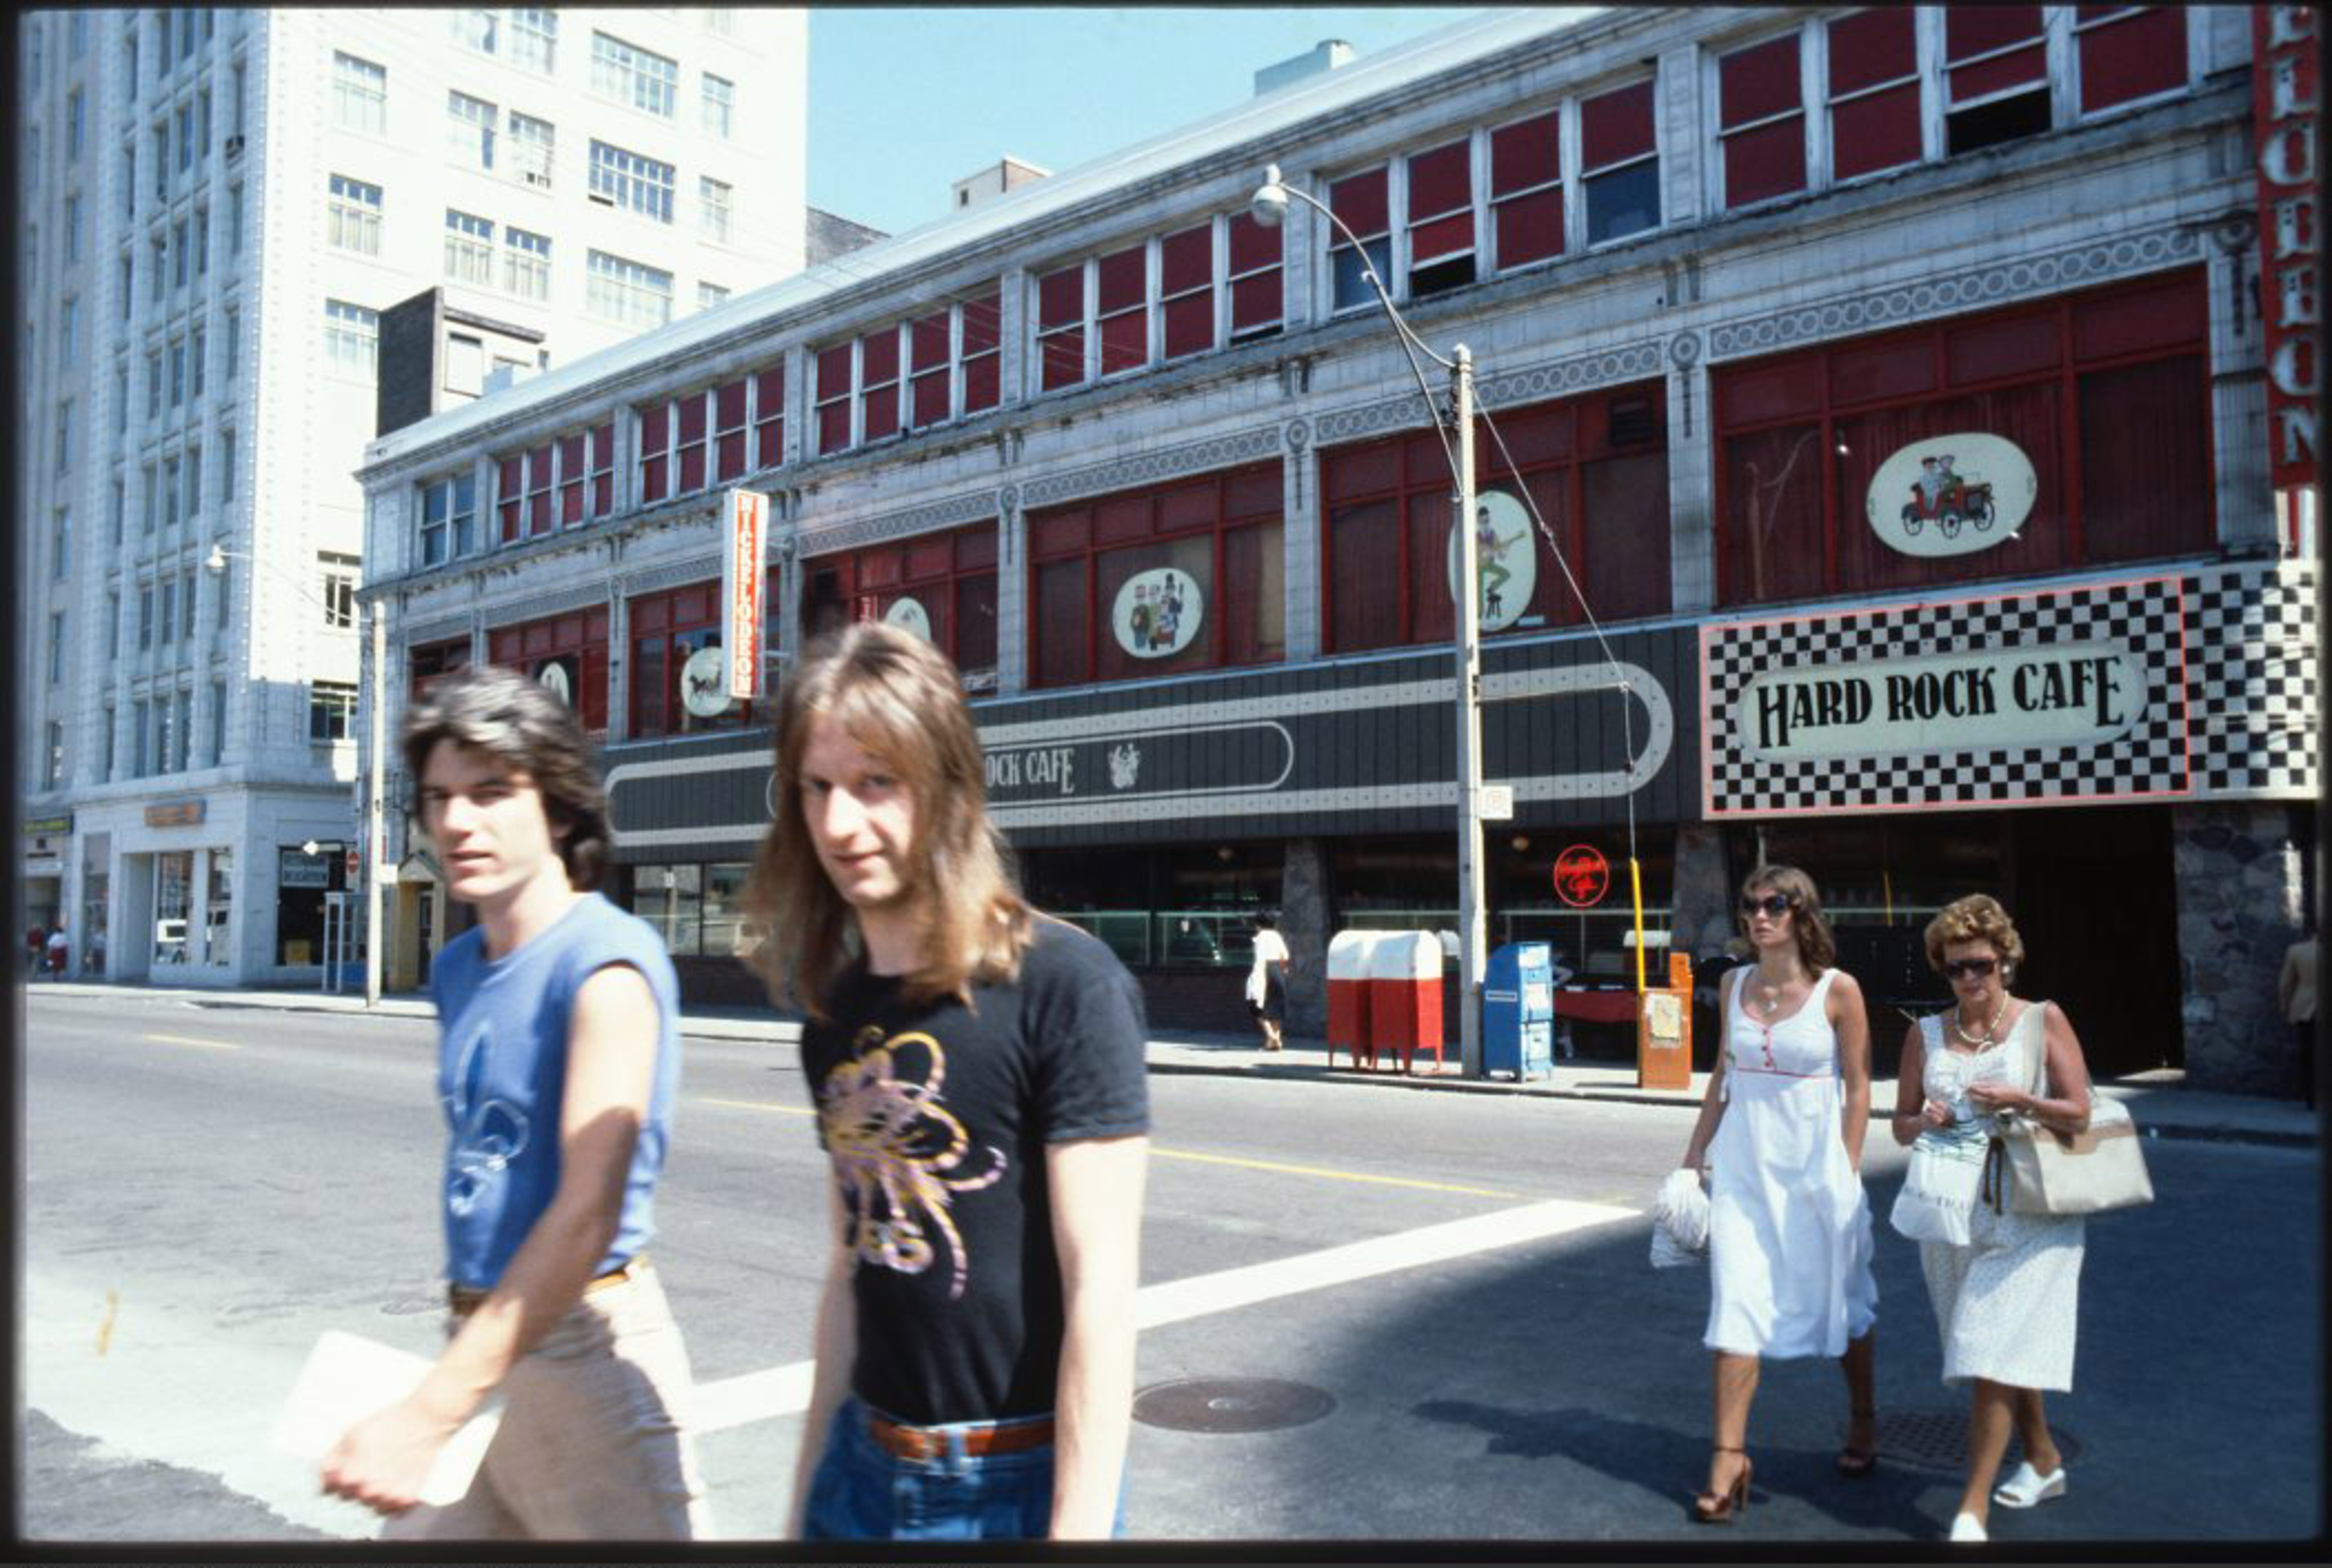 Hard Rock Cafe Toronto 1970s